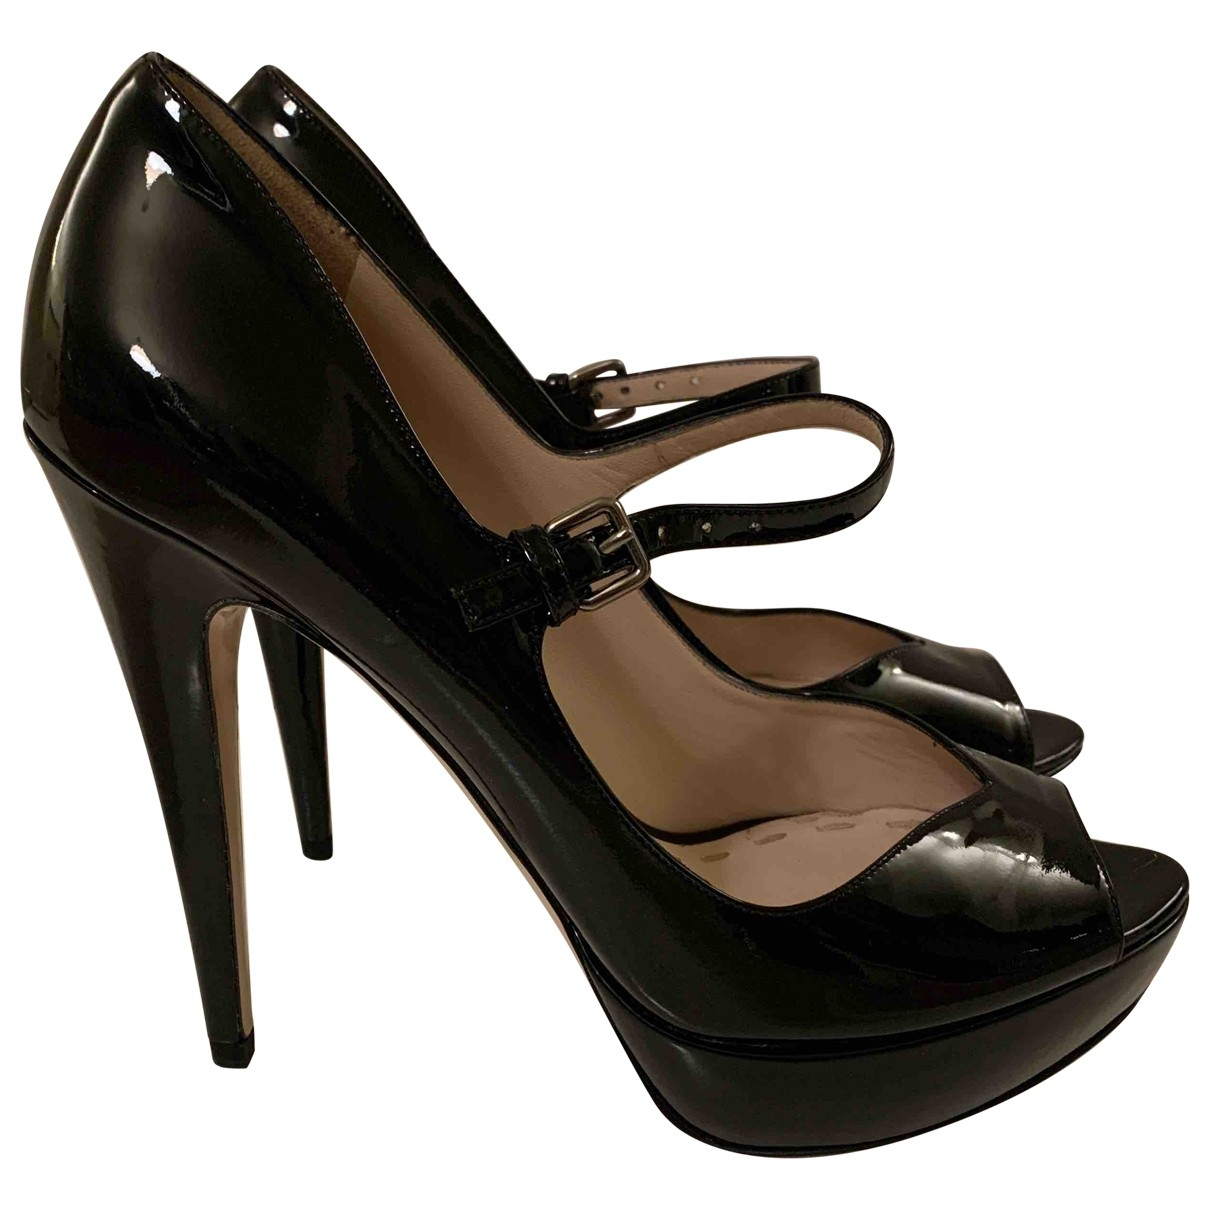 Miu Miu \N Black Patent leather Heels for Women 39 EU